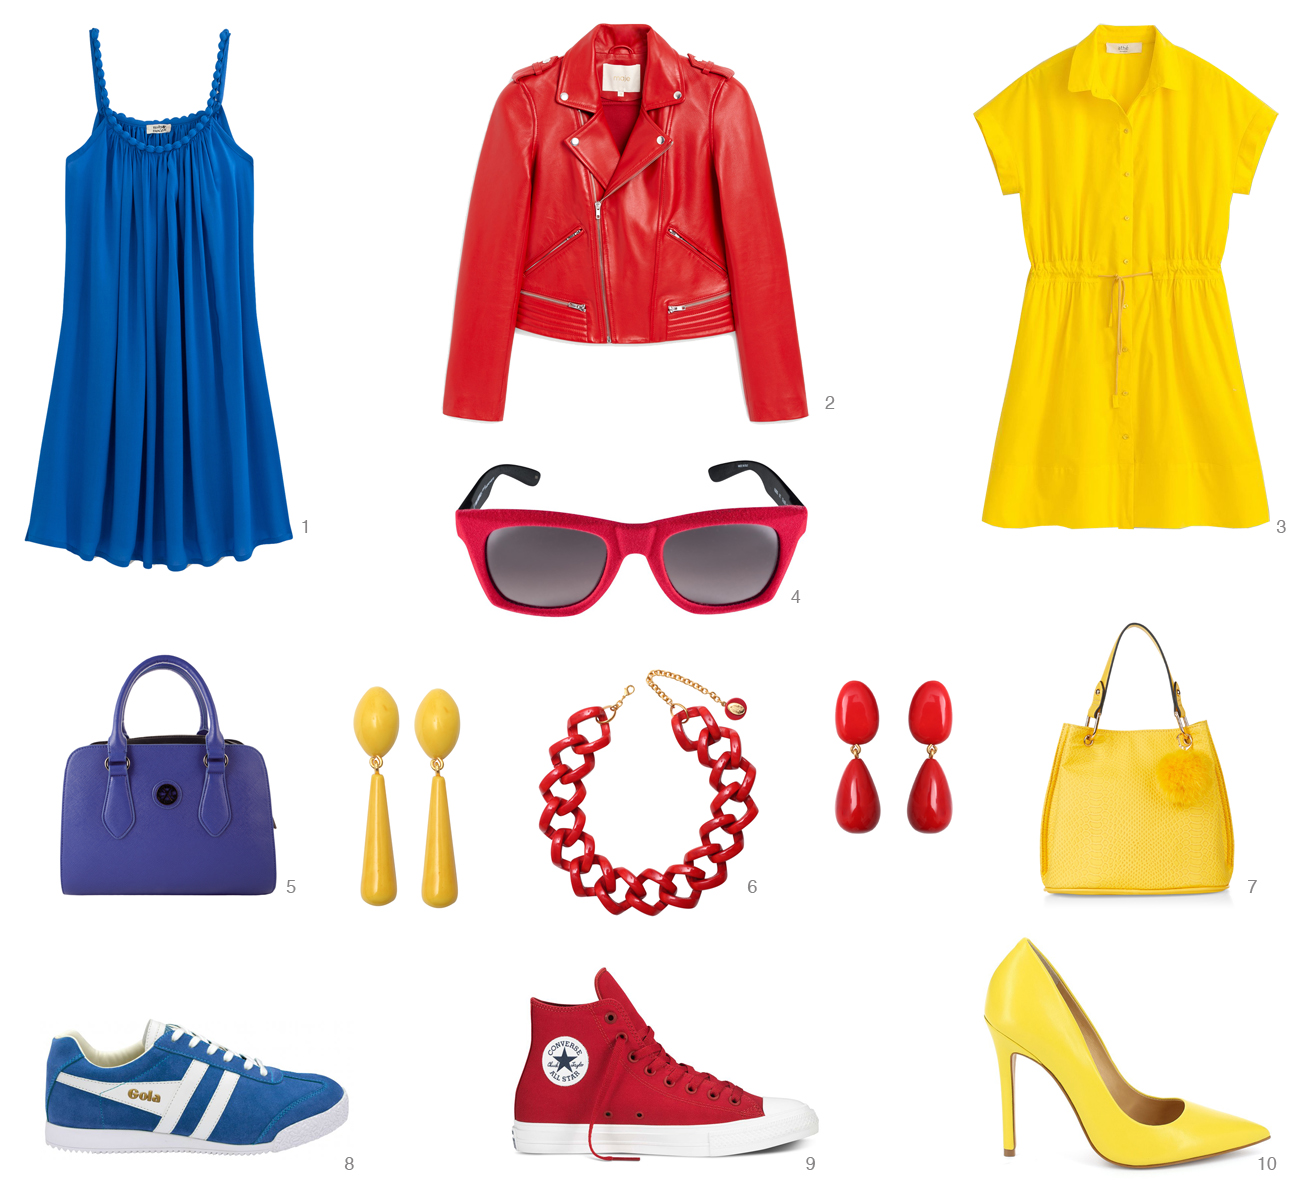 fashion-selection-primary-colors-mondrian